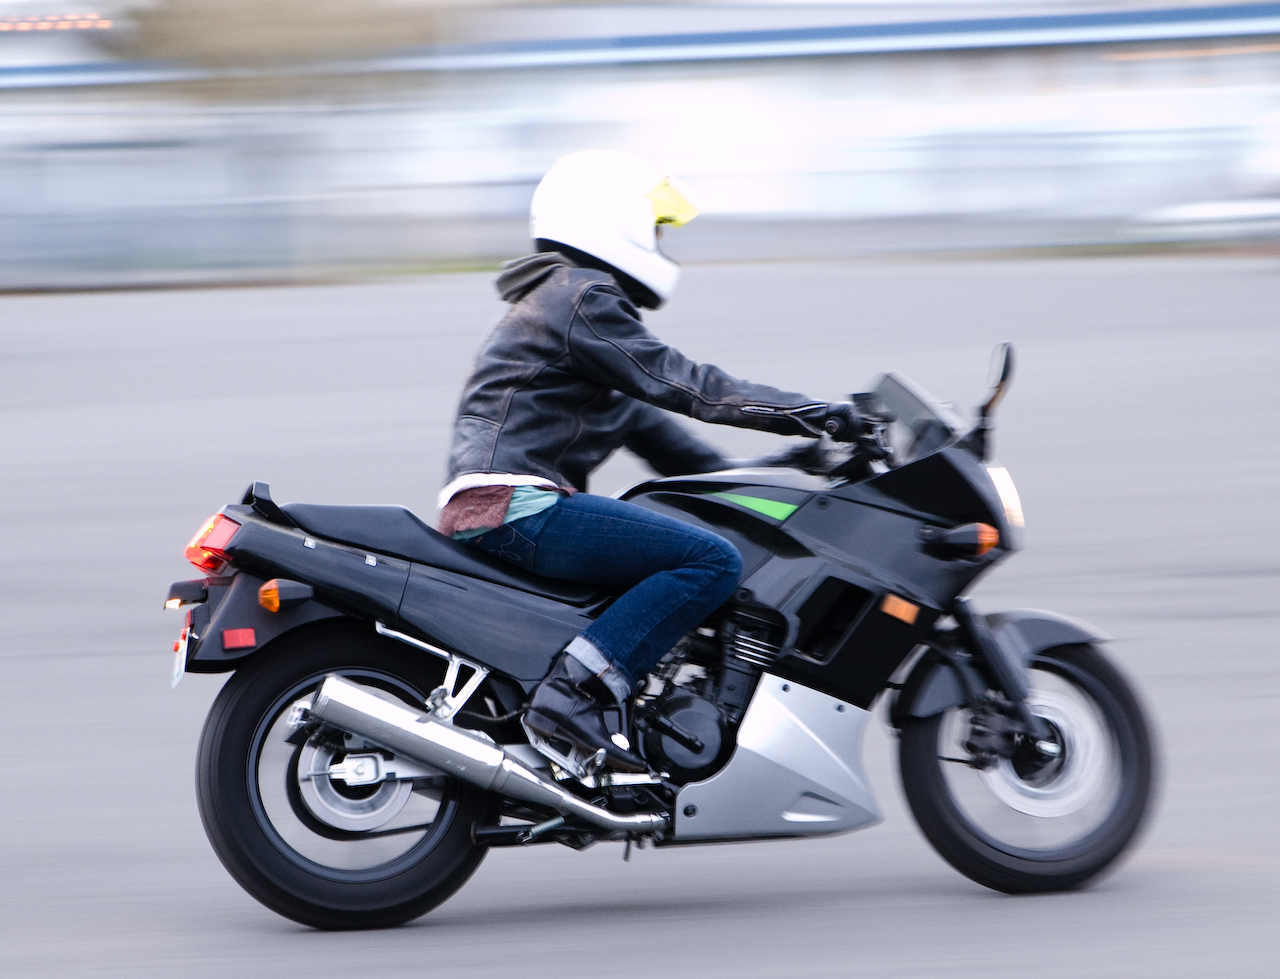 The Popularity of Street Bikes and Their Fuel Economy